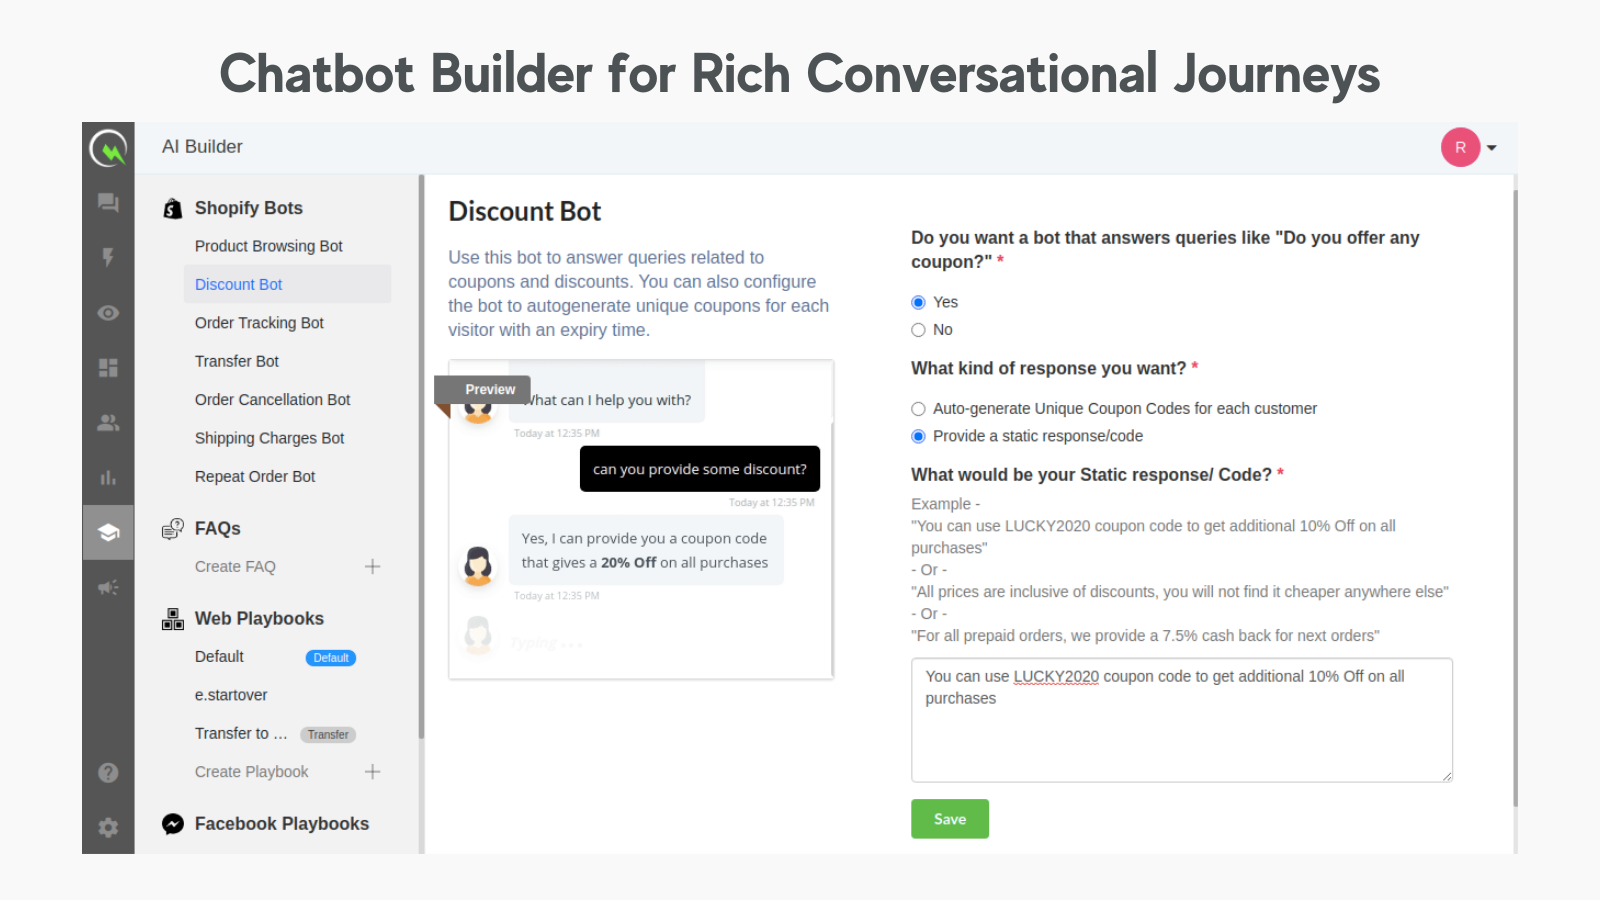 Seamlessly Customise Chatbots by Answering Simple Questions